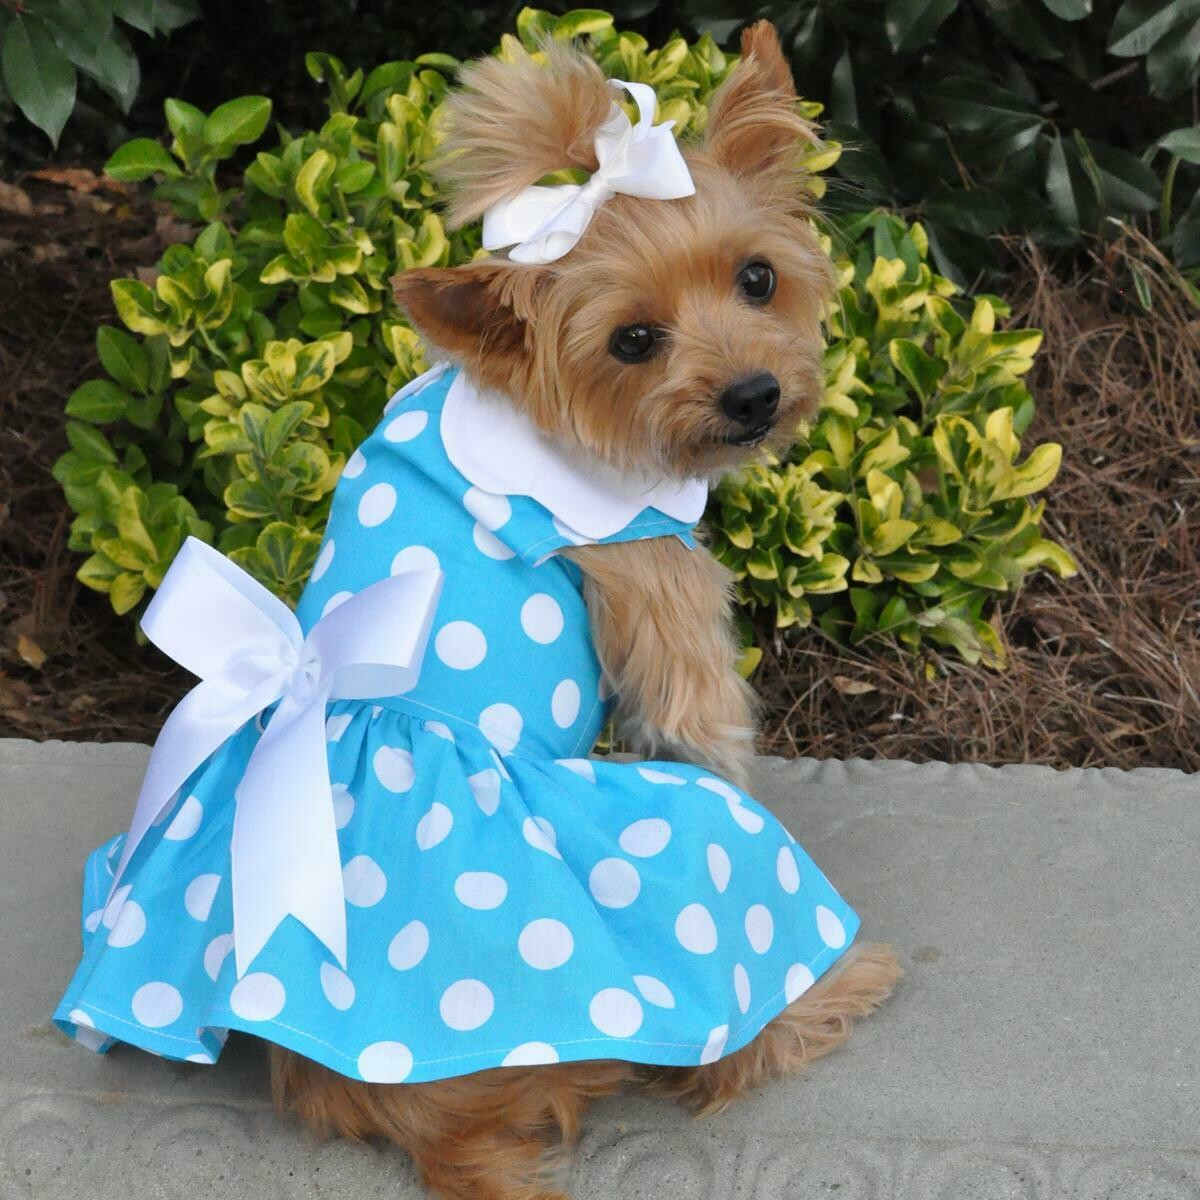 Blue Polka Dot Dog Dress with Leash